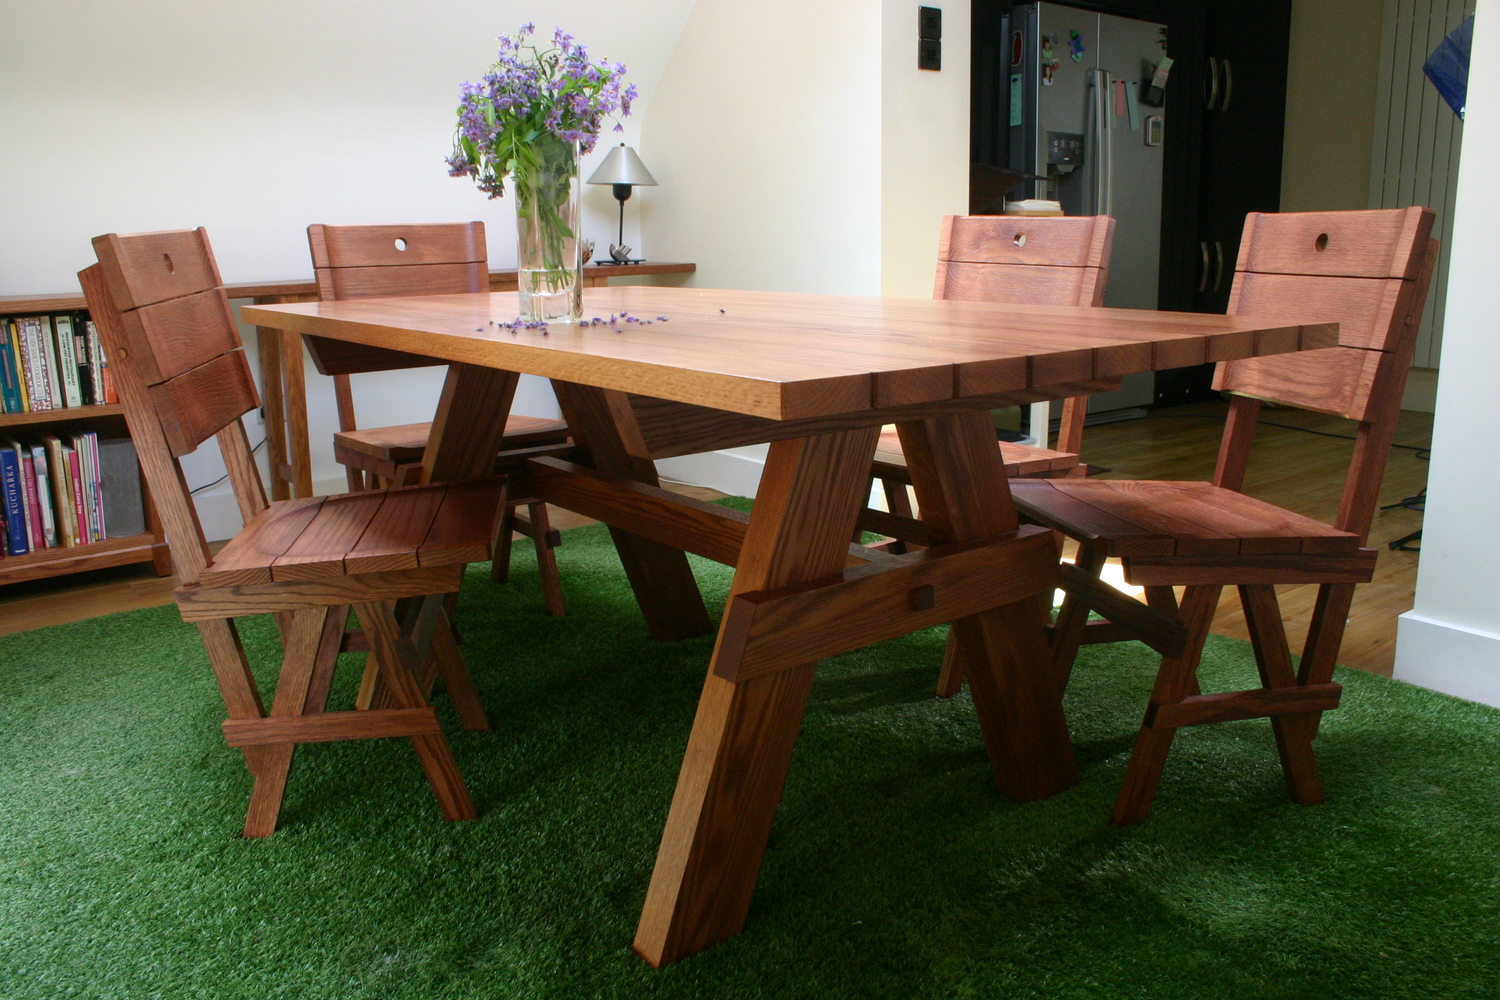 Picnic Table And Chairs 3JPG